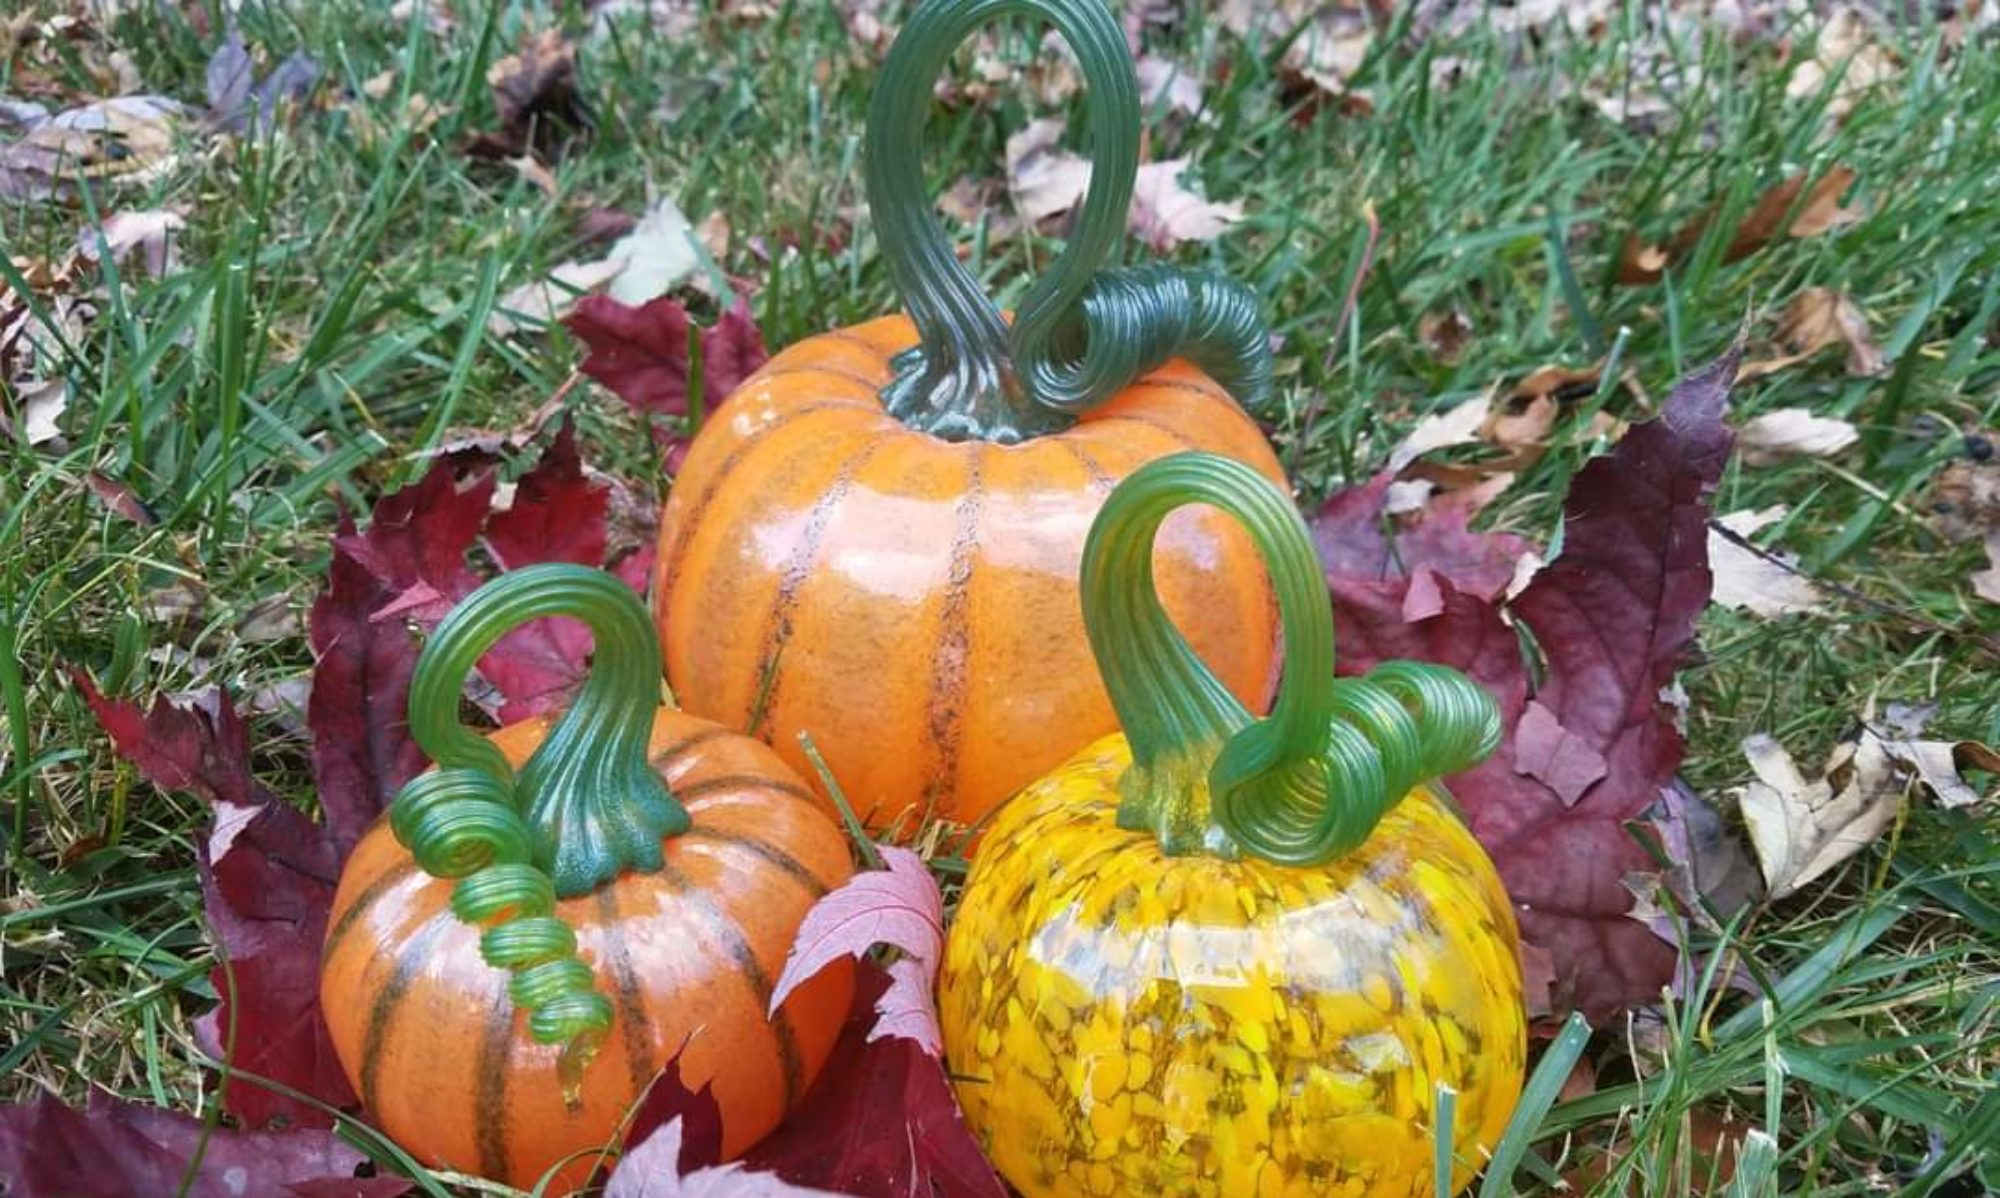 """NOW BOOKING FALL and WINTER workshops, currently at 60% off using code """"Pumpkin60"""" at checkout. More details below"""